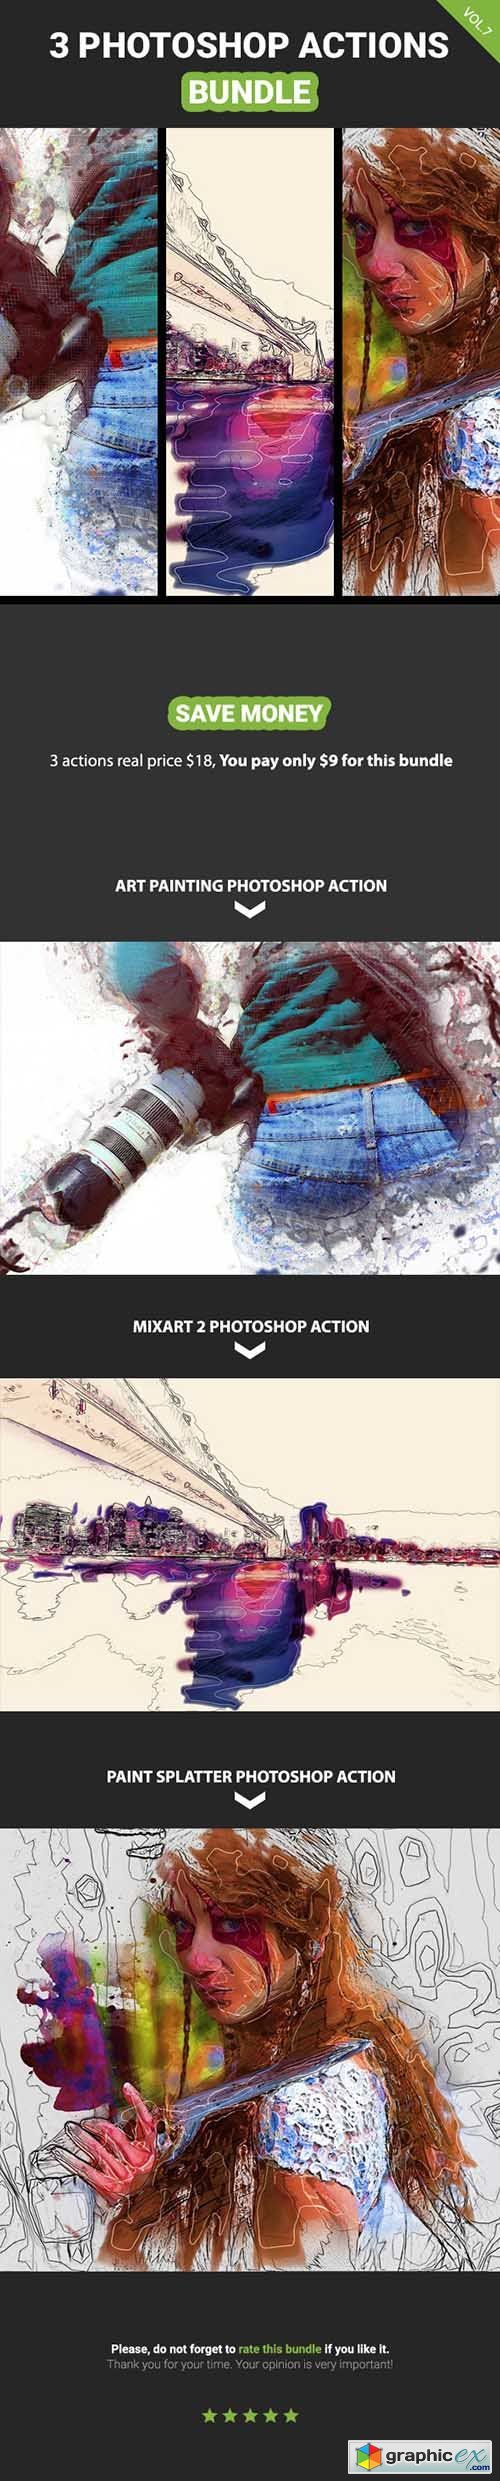 3 Photoshop Action Bundle - Vol.7